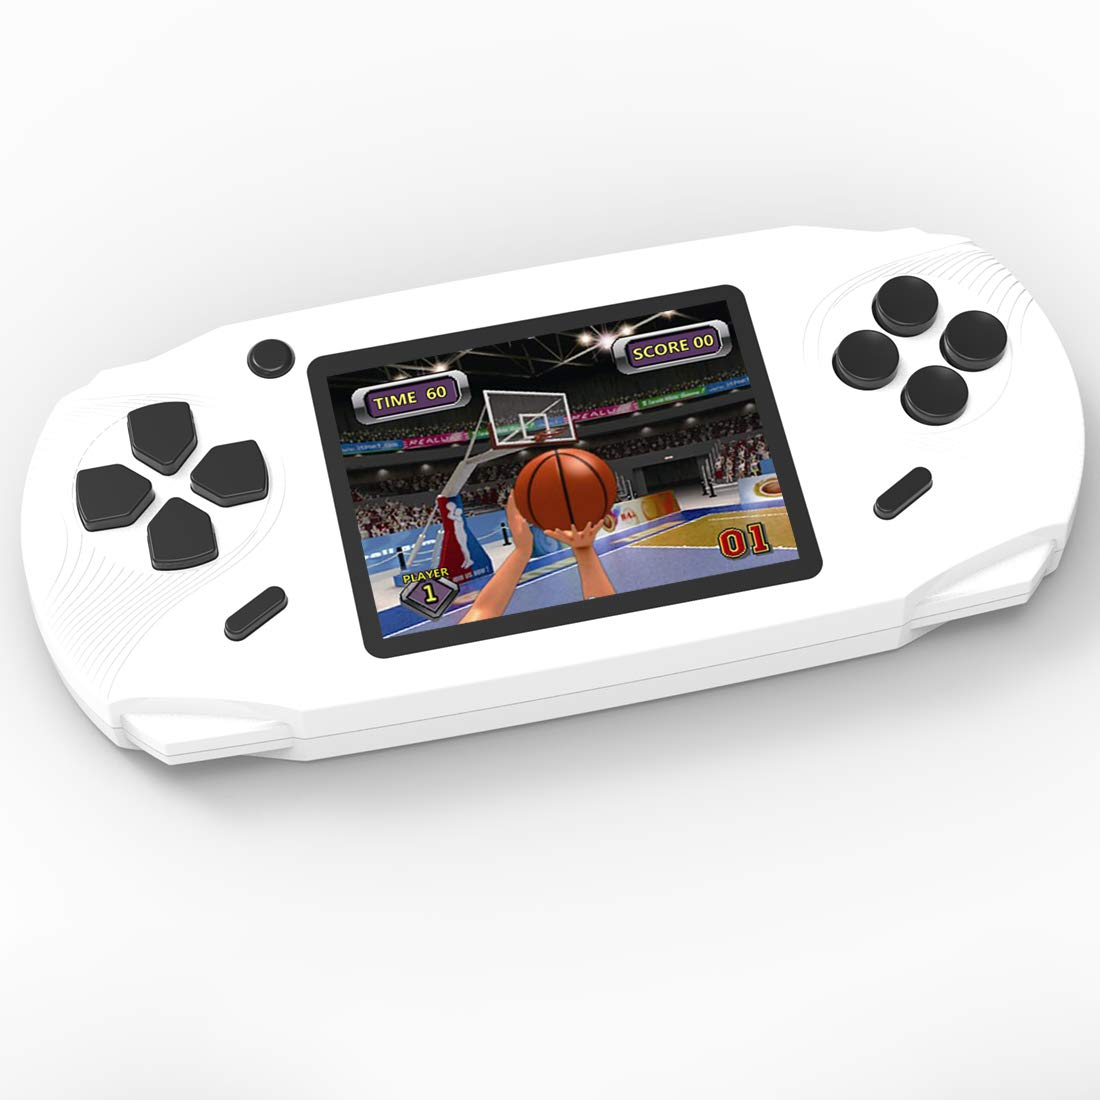 503ce934c2d4 Bornkid 16 Bit Handheld Game Console for Kids and Adults with Built in 100  HD Puzzle Video Game 3.0   Large Screen Senior Electronic Handheld Games  Boys ...